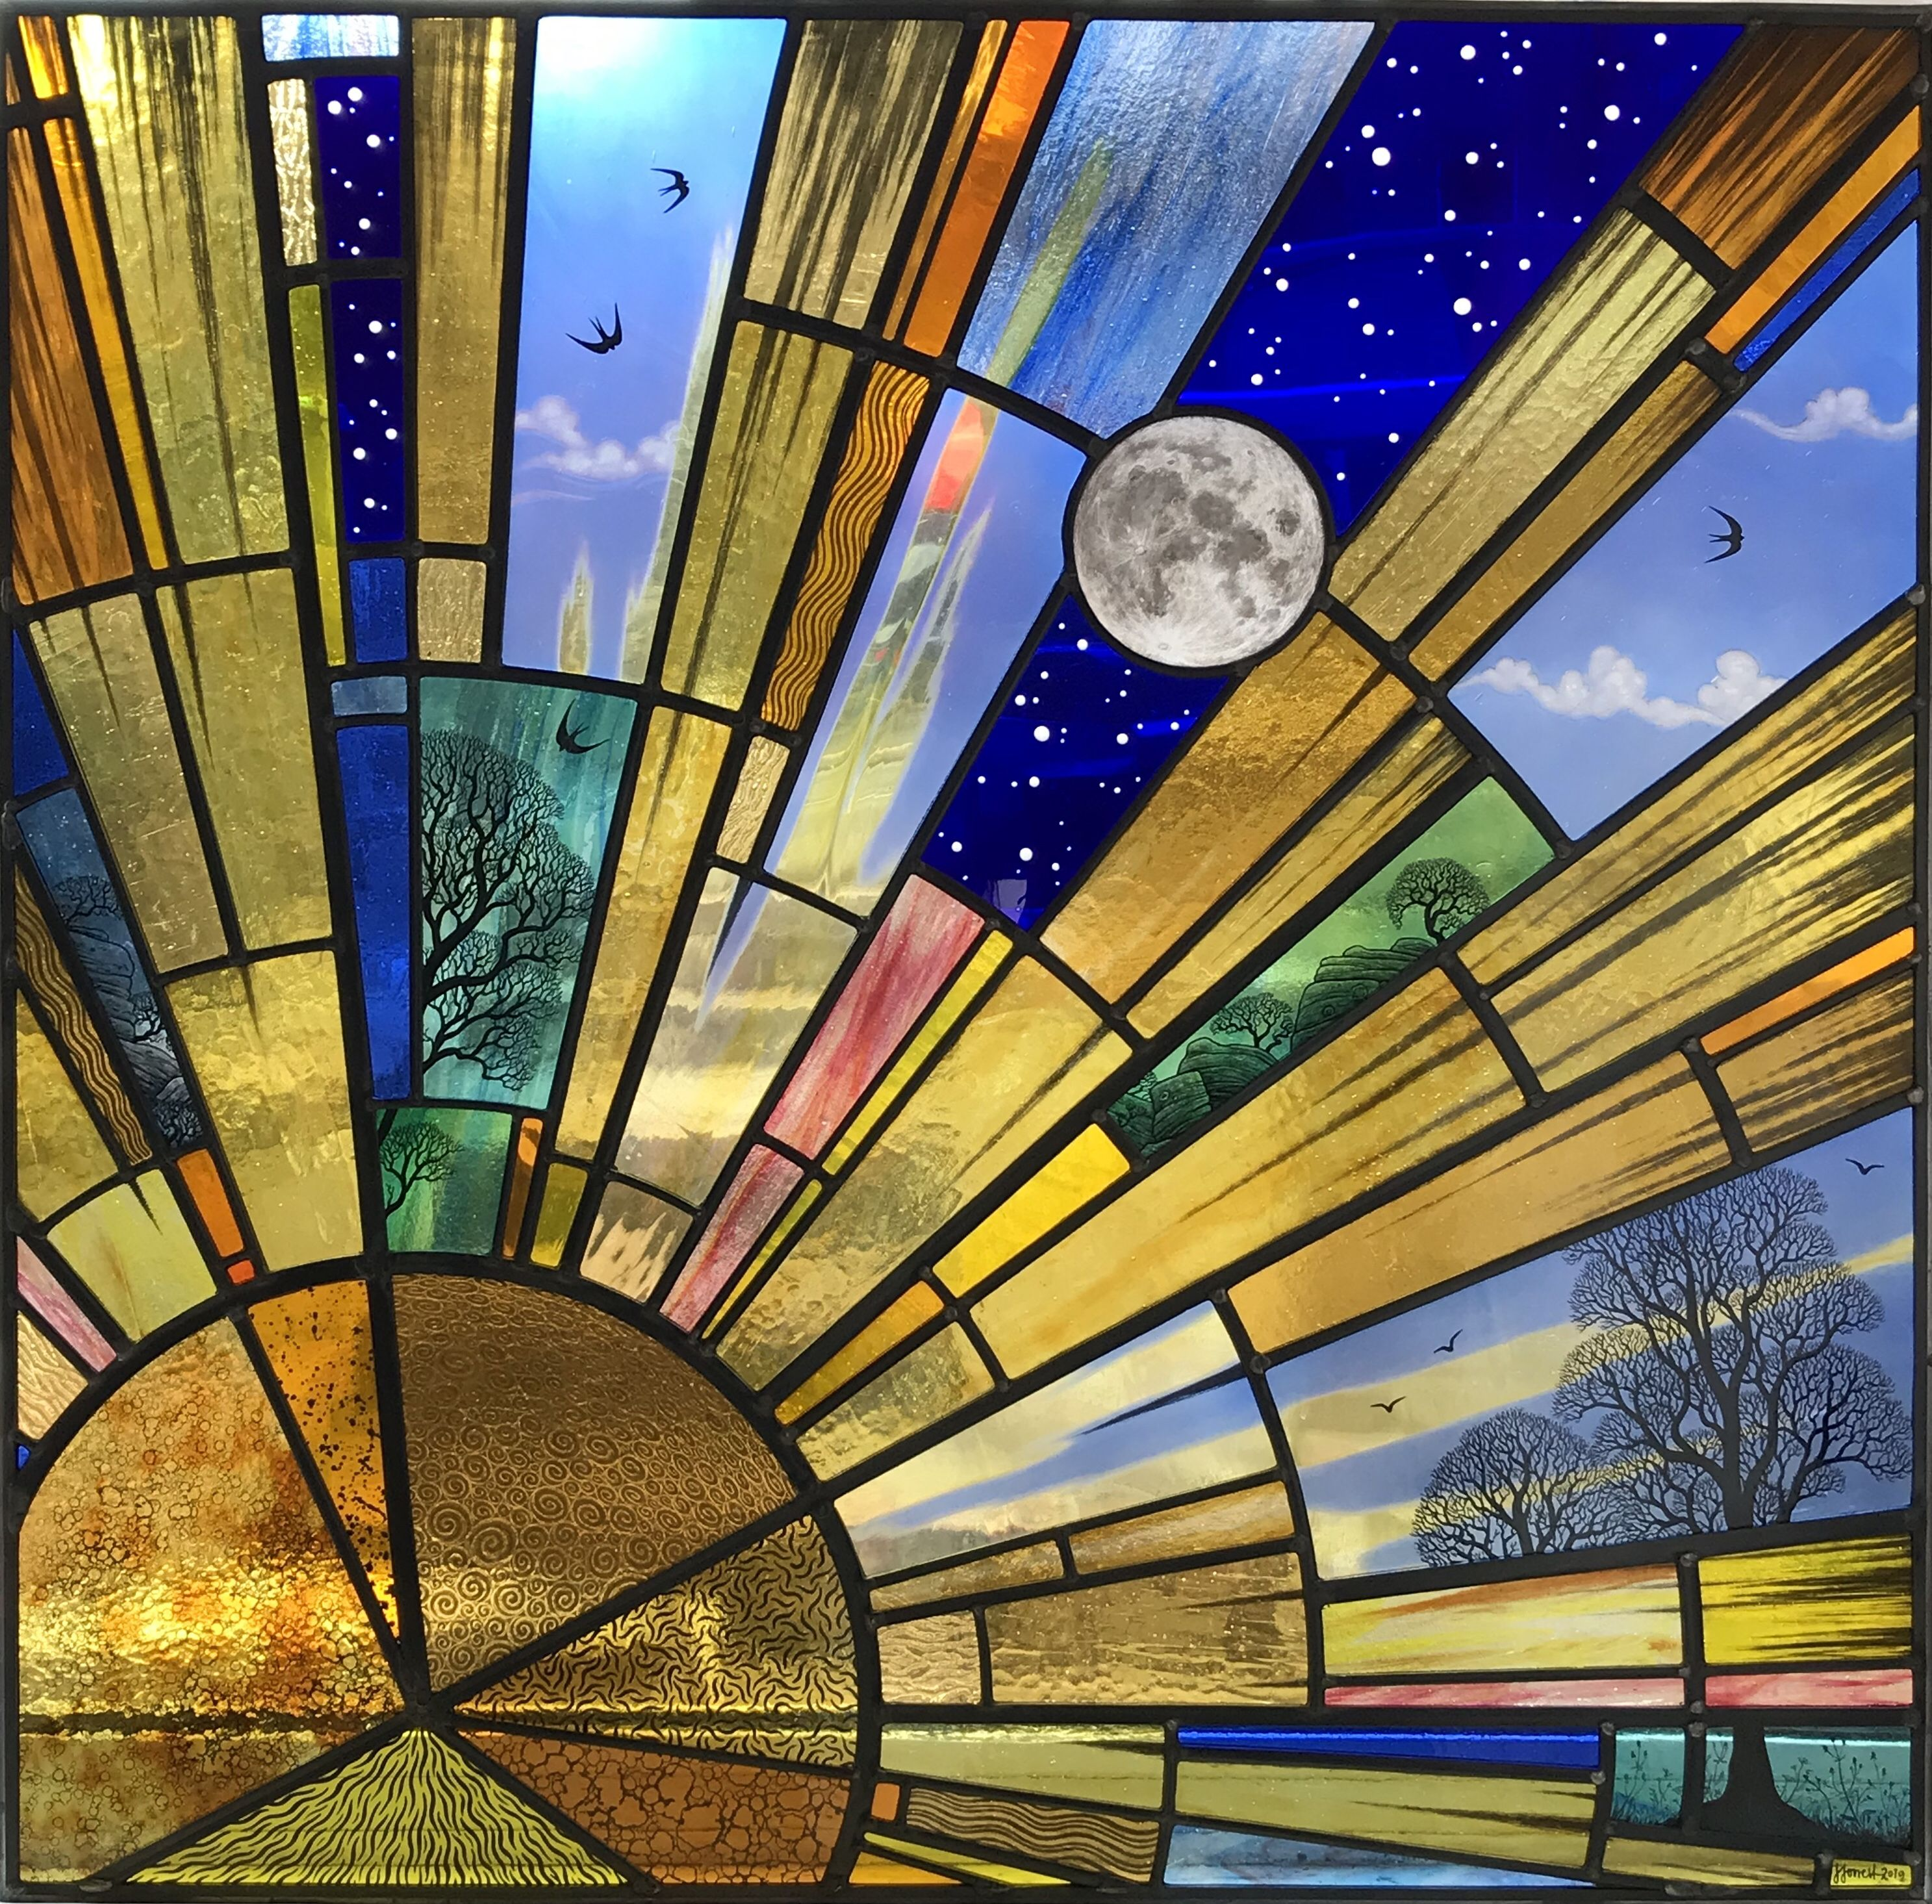 Square Stained Glass Architectural Window Depicting A Sunrise With